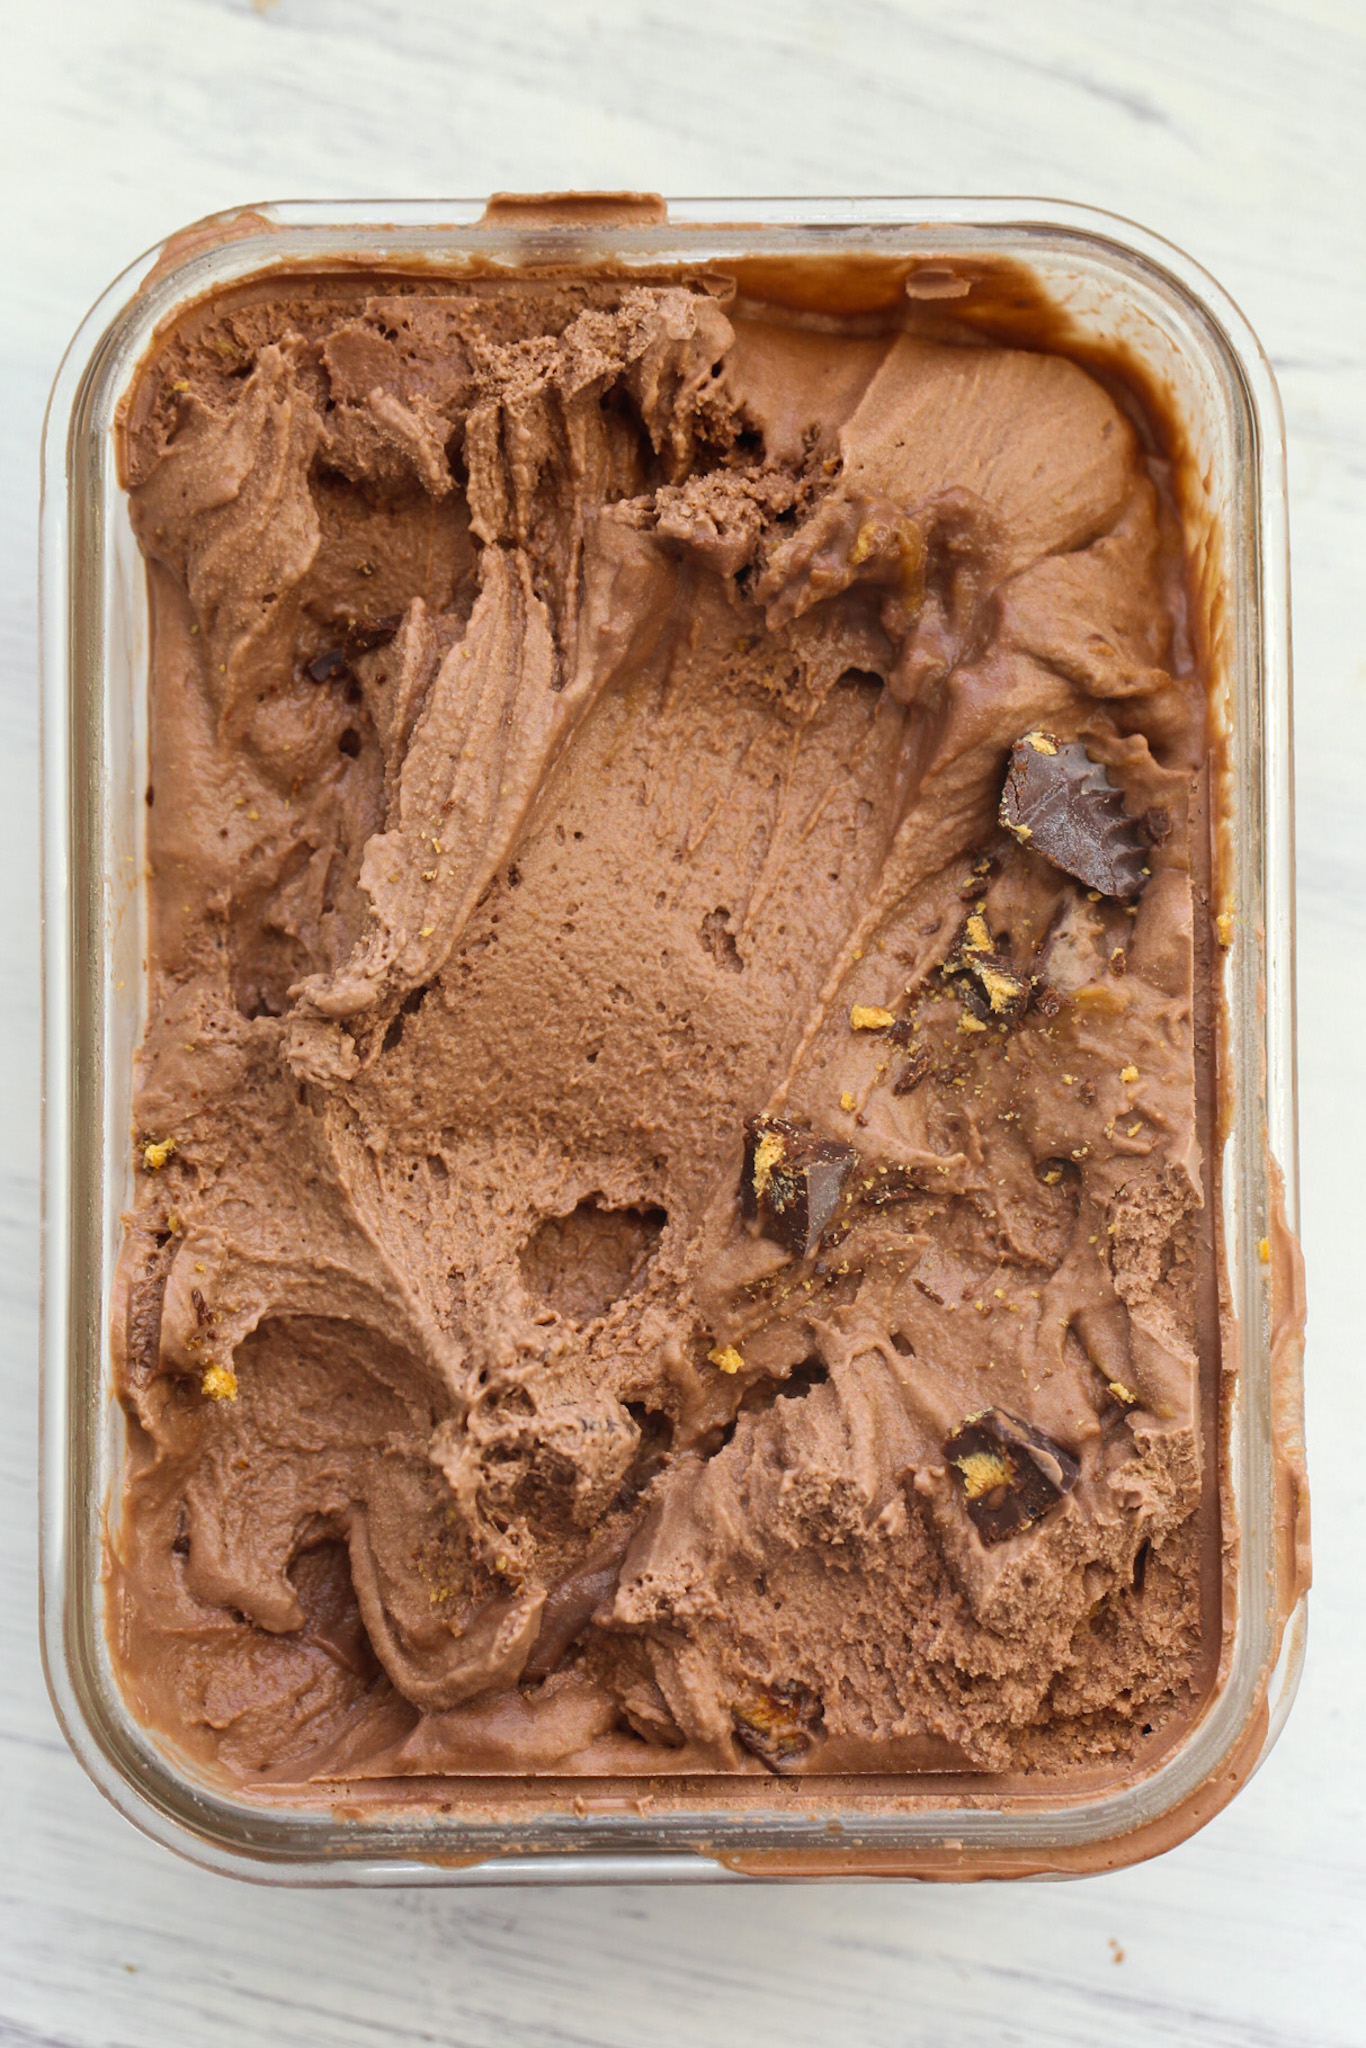 Chocolate Peanut Butter Ice Cream in container